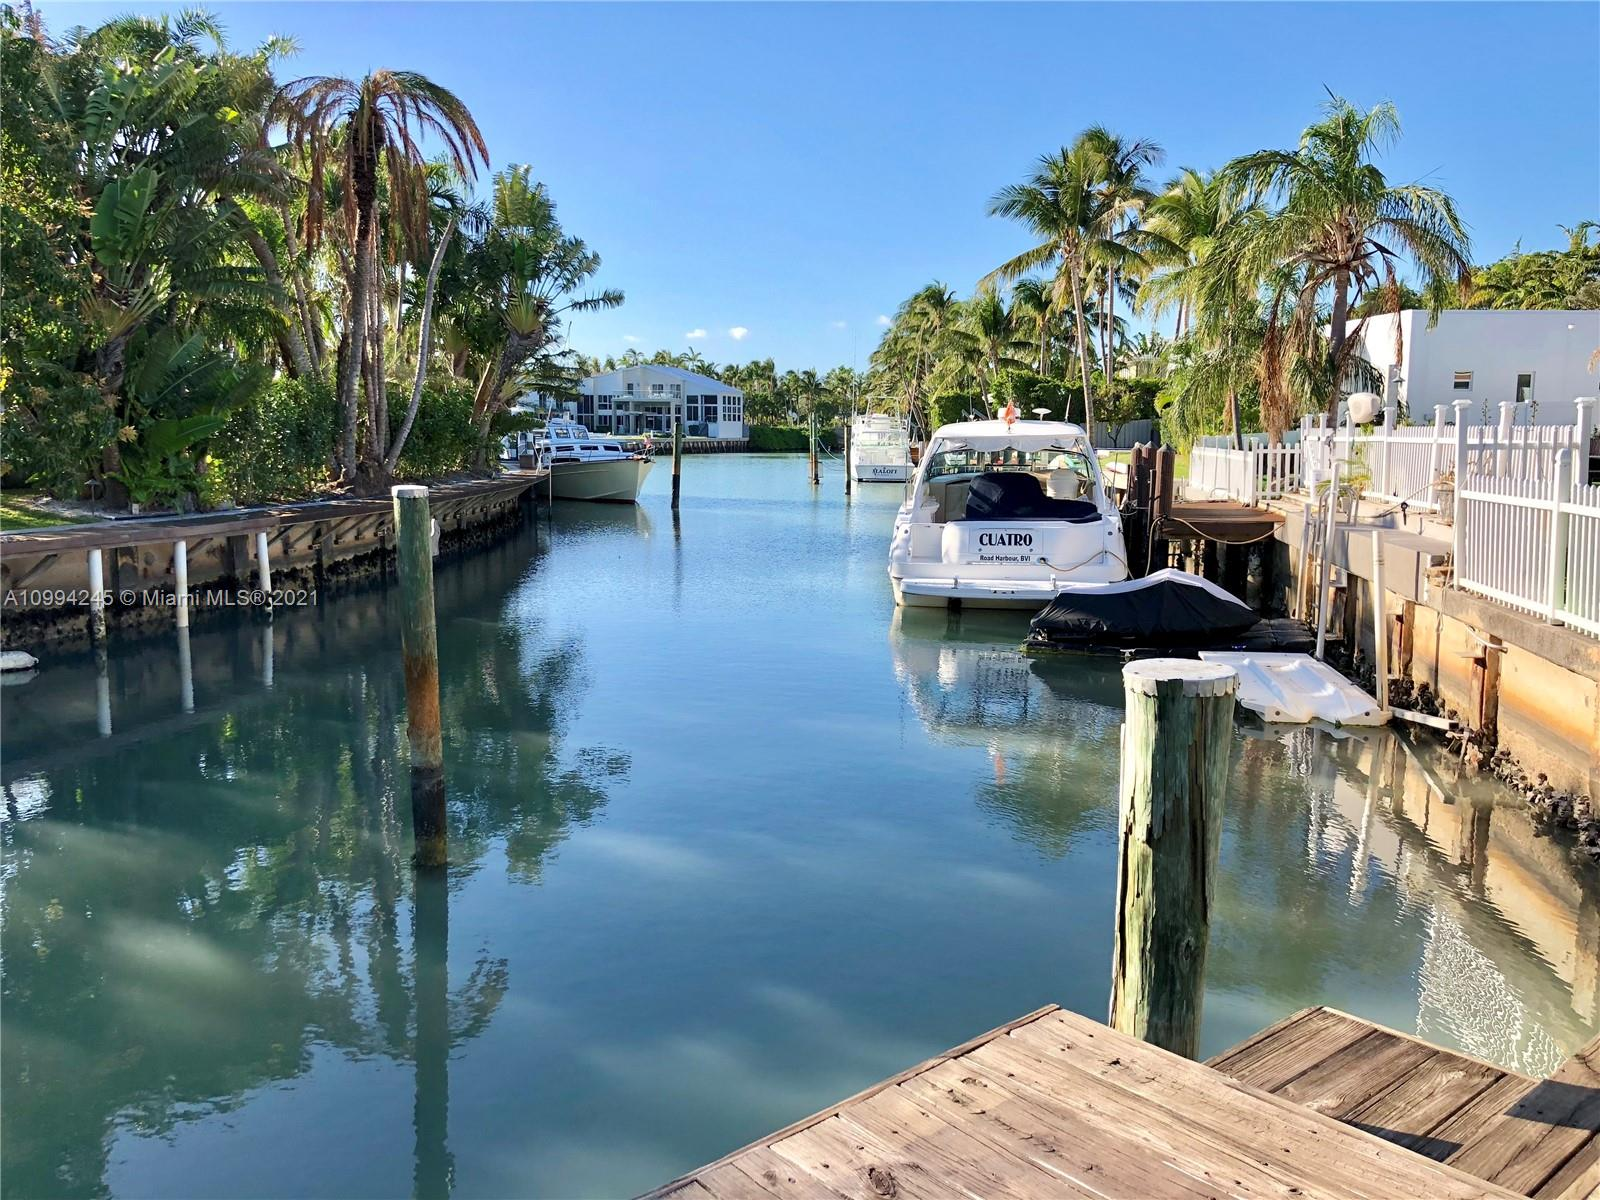 This home is located in a uniquely private corner lot at Island Drive and Cape Florida with 19,042 SF as per survey and over 25,000 SF of enjoyment, with a water frontage of 77 feet to accommodate comfortably a large boat.  Boaters paradise with absolute privacy. This home features marble floors throughout, remodeled kitchen and plenty of space with over 5100 SF under A/C, 5 Beds, 5 Baths.  See SURVEY attached for measurements (Second Survey available as well).